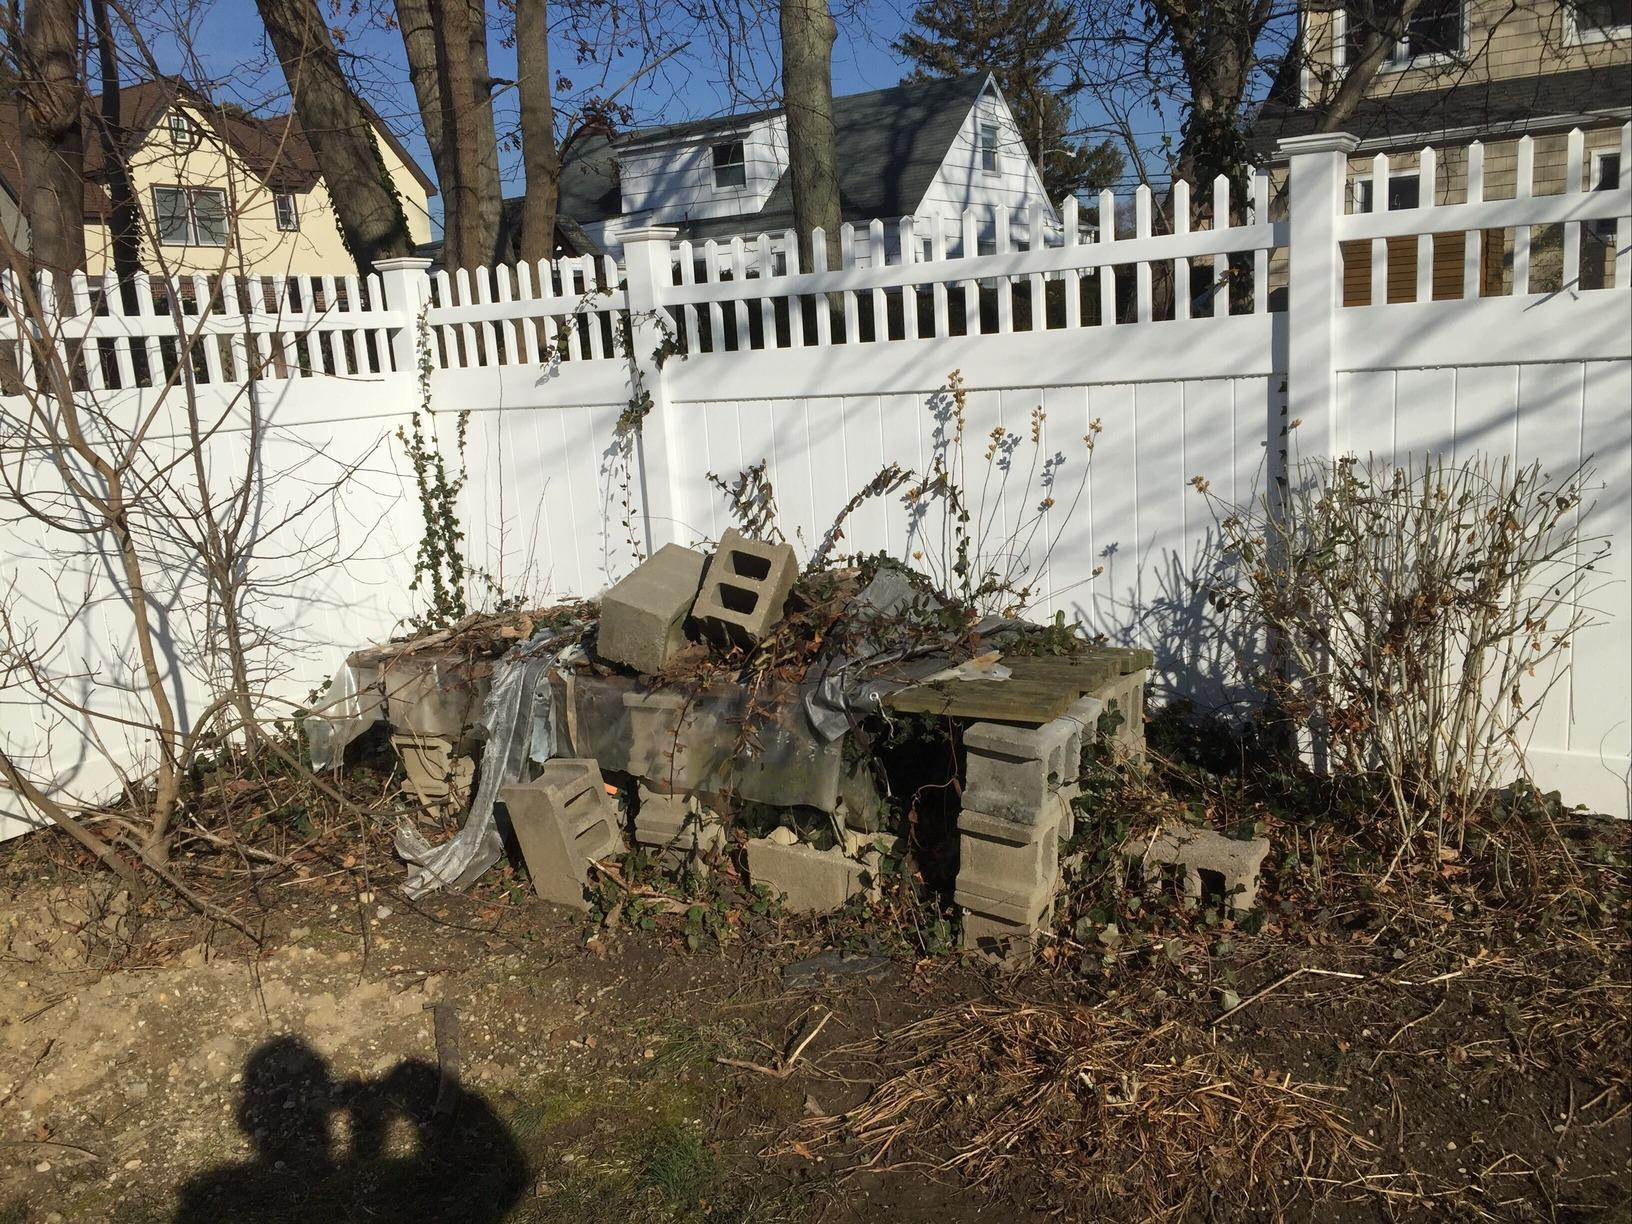 Cinder Block Removal in Bay Shore, NY - Before Photo